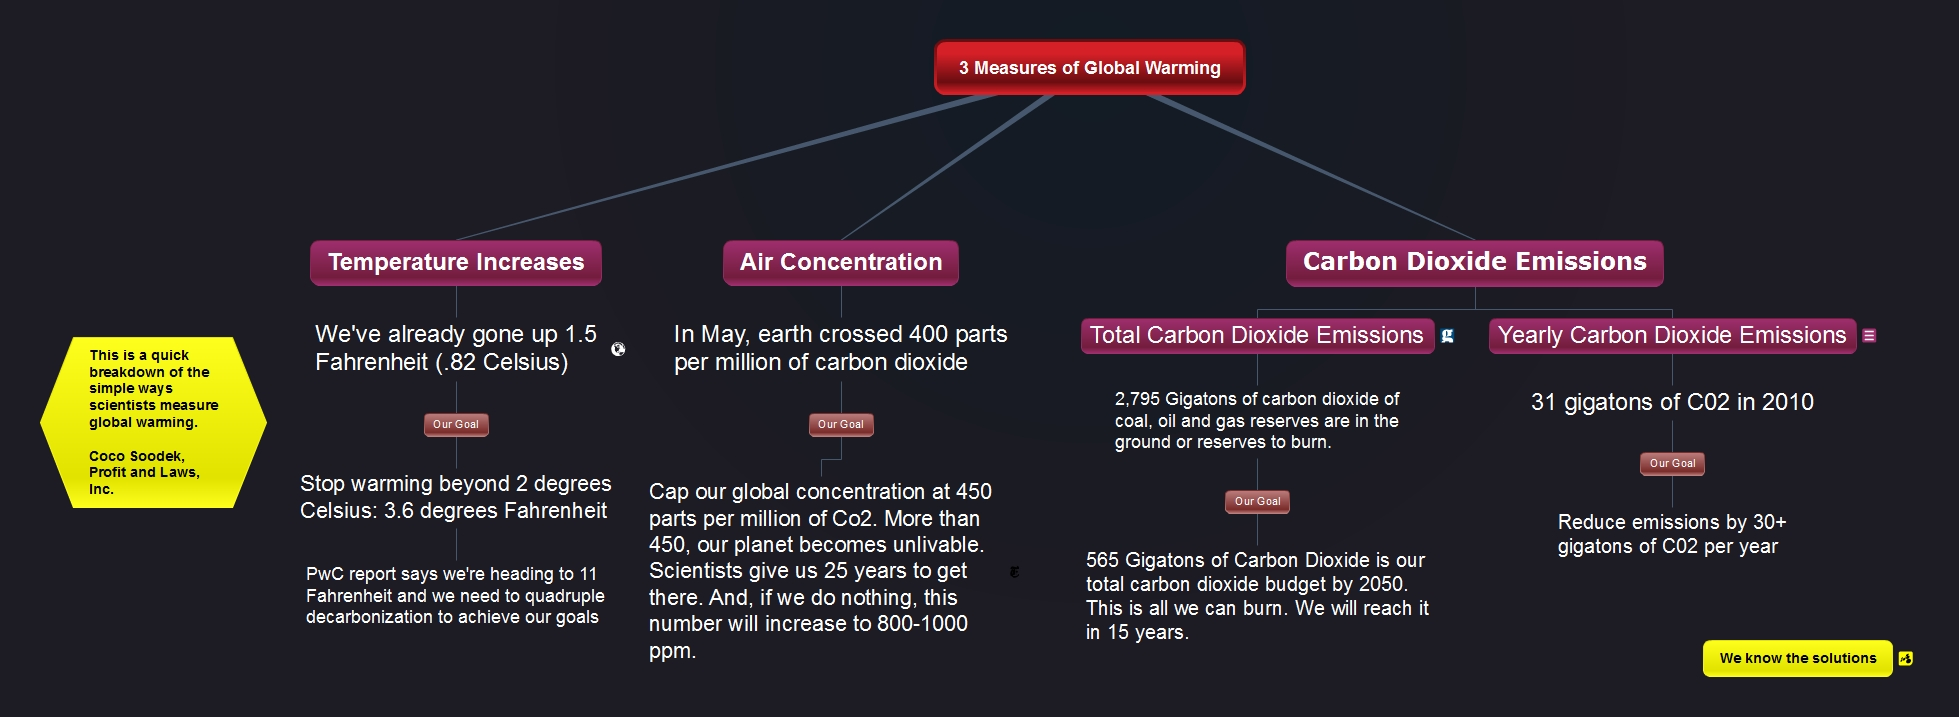 Global Warming Where We Are, Where We Need to Go